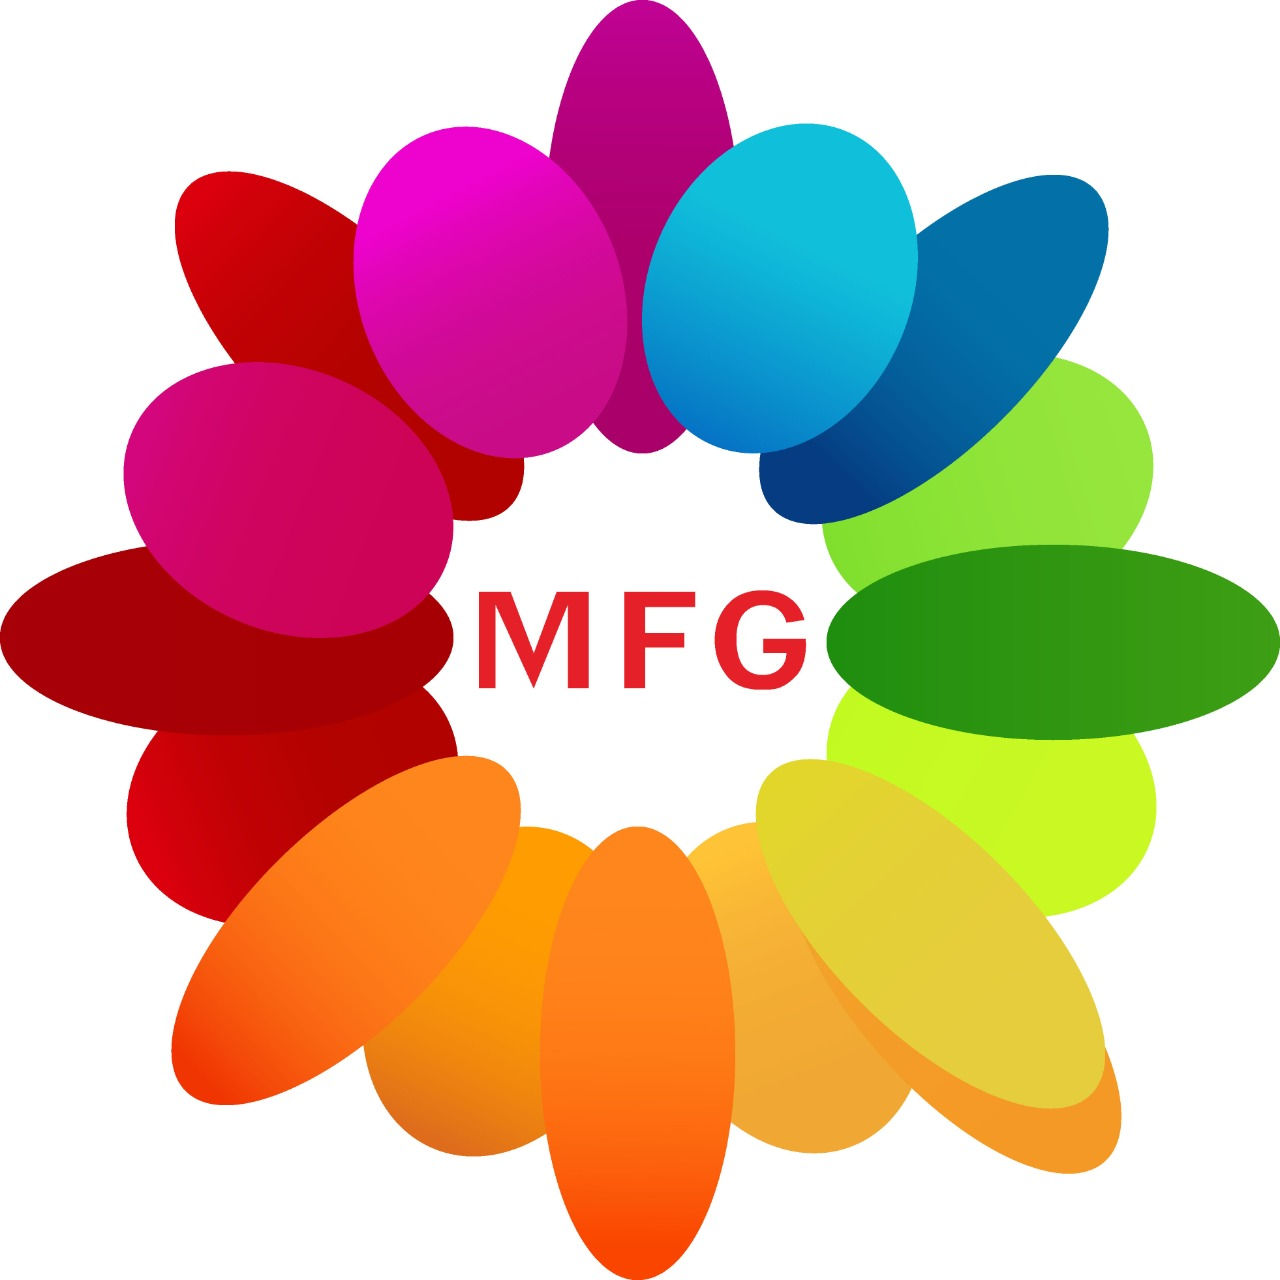 1 kg black forest cake with bottle of red wine